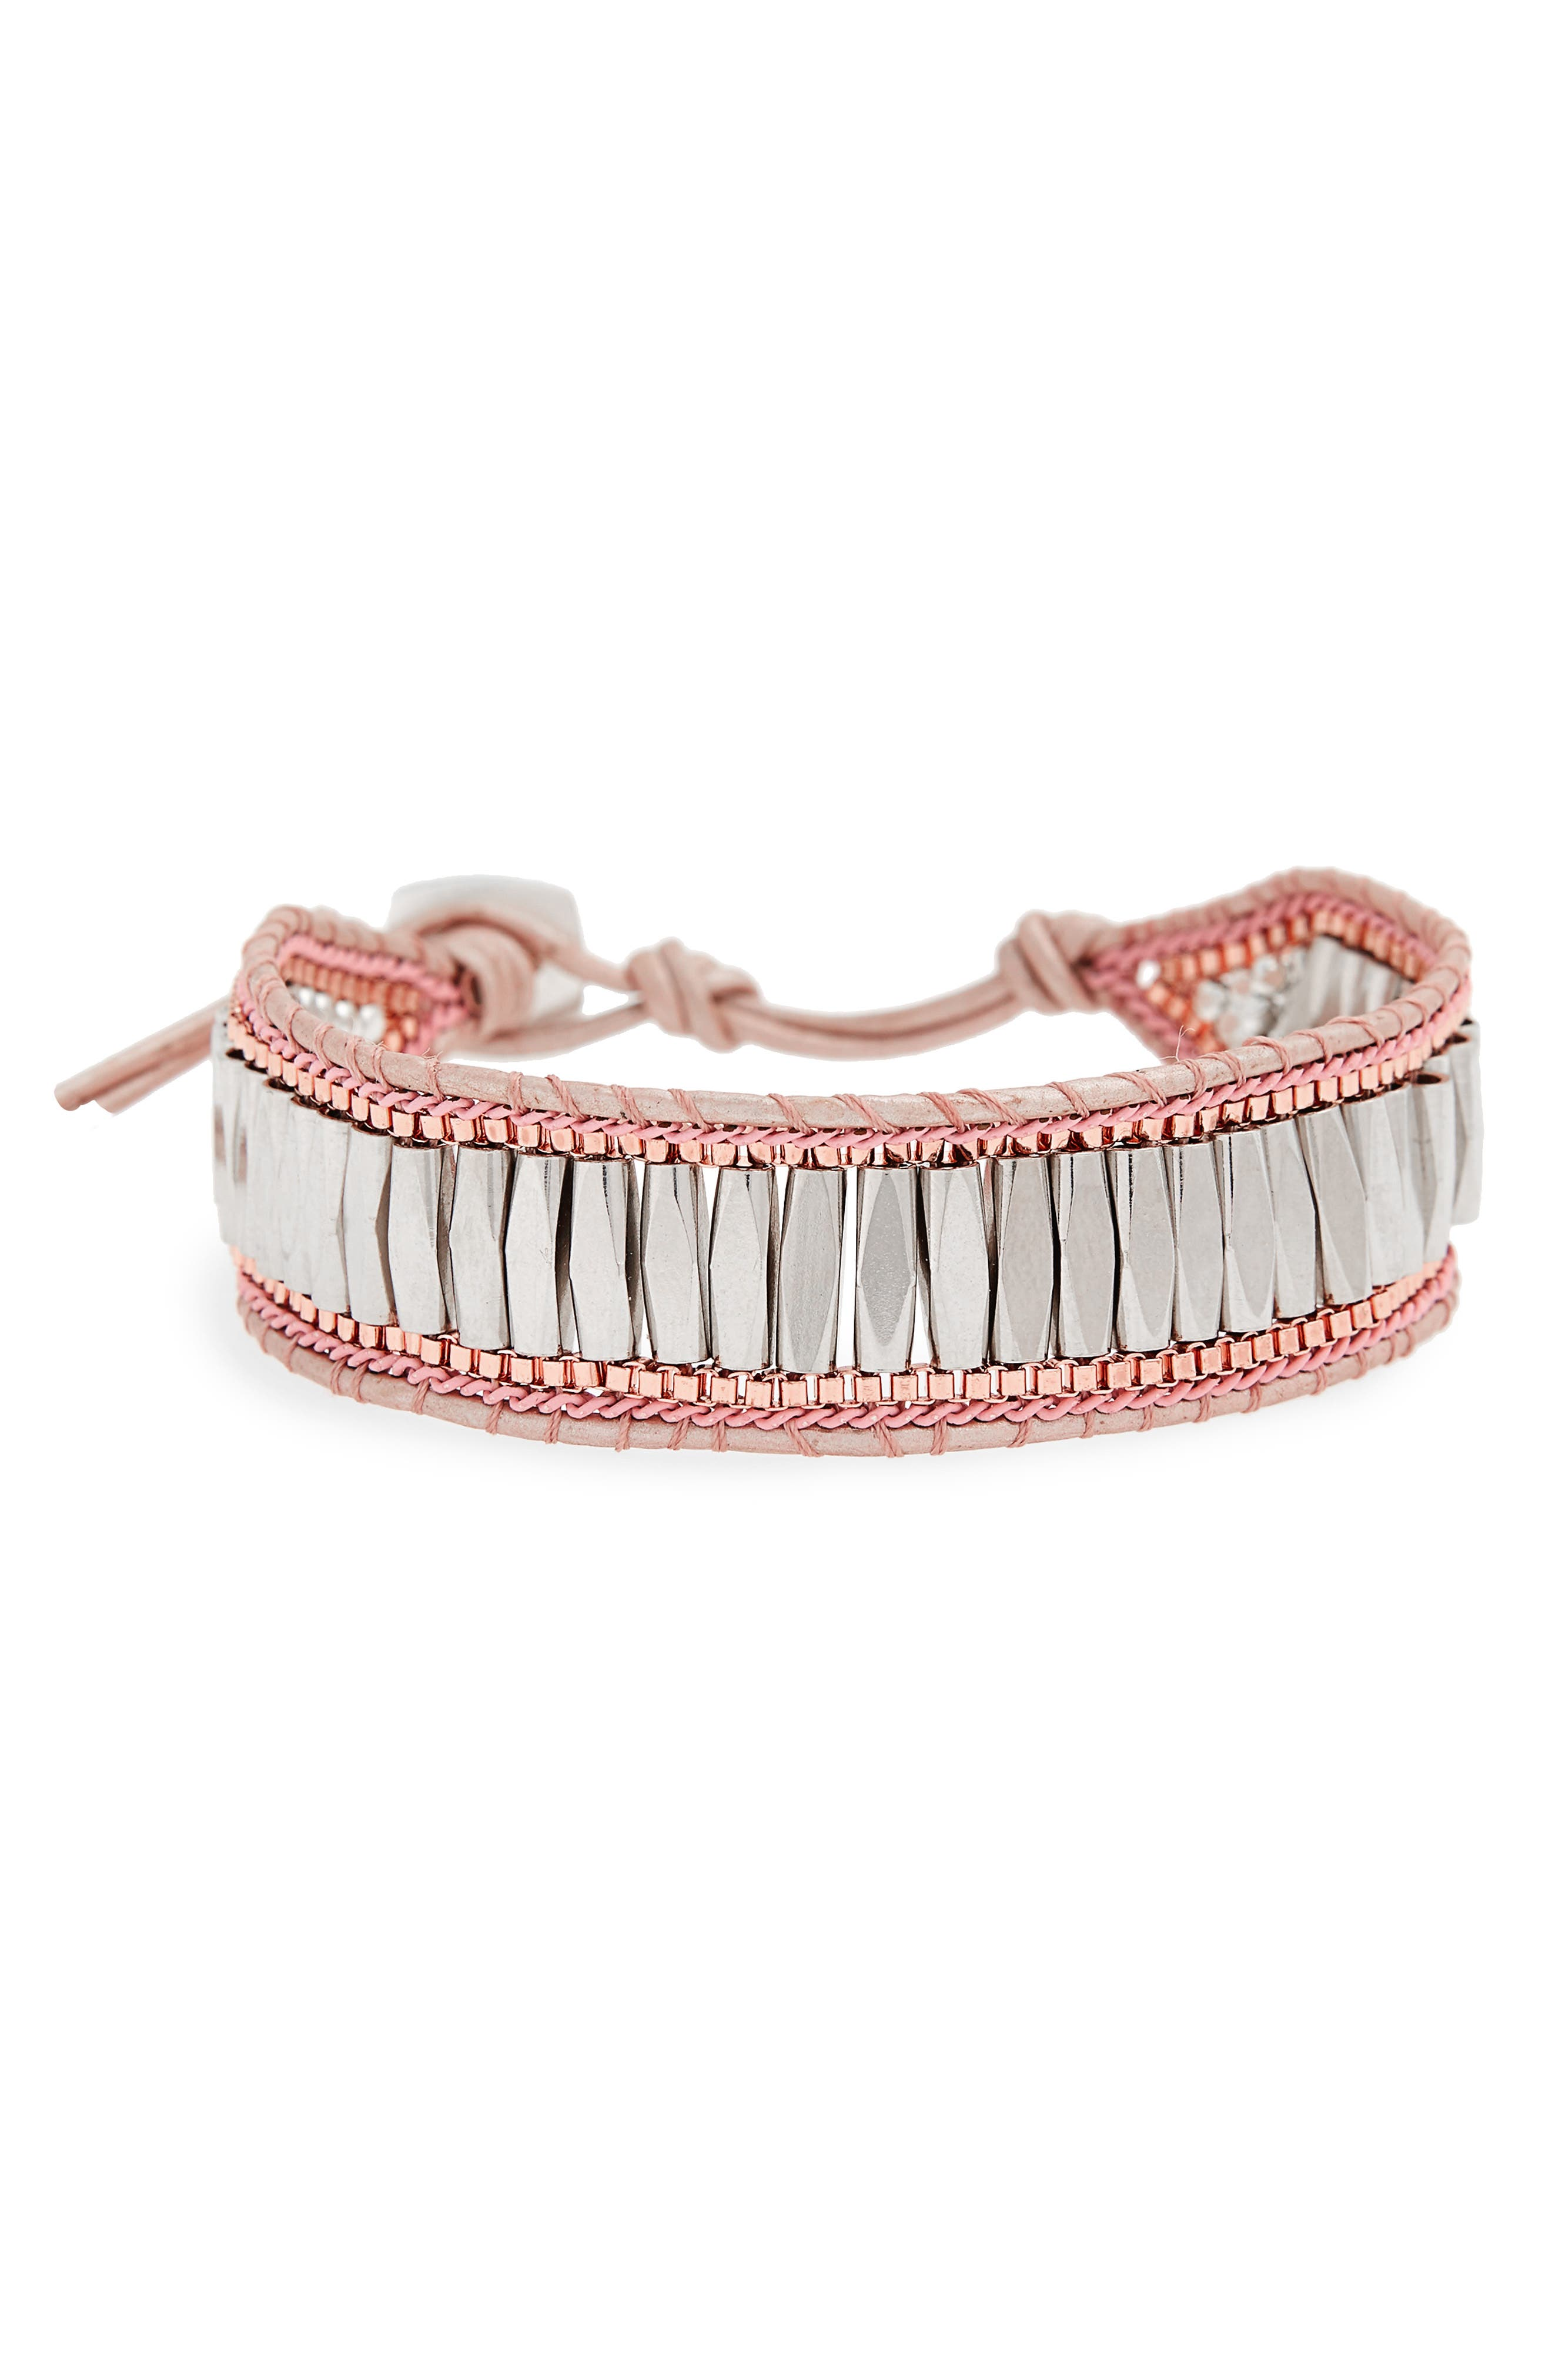 Beaded Leather Bracelet,                         Main,                         color, Pink